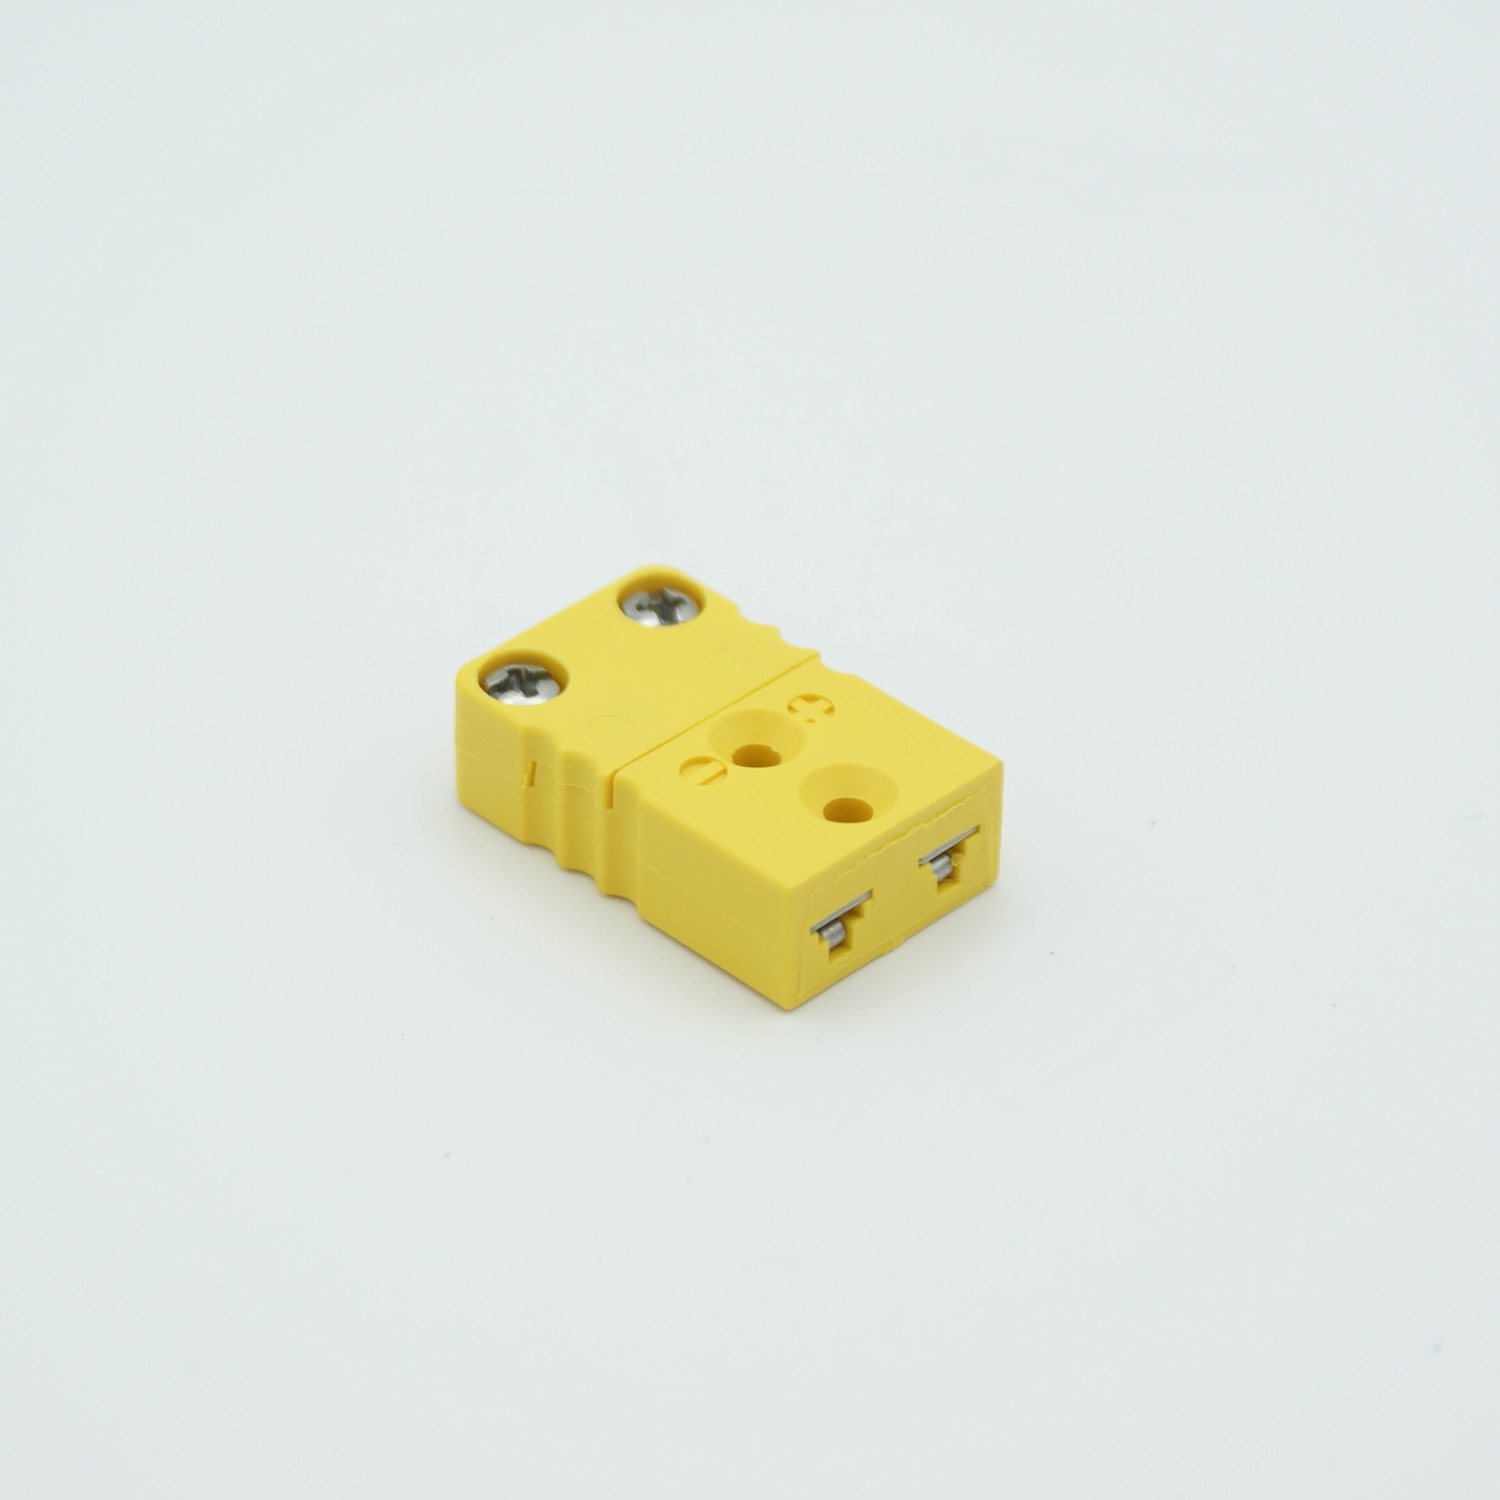 K-type miniature Thermocouple connector